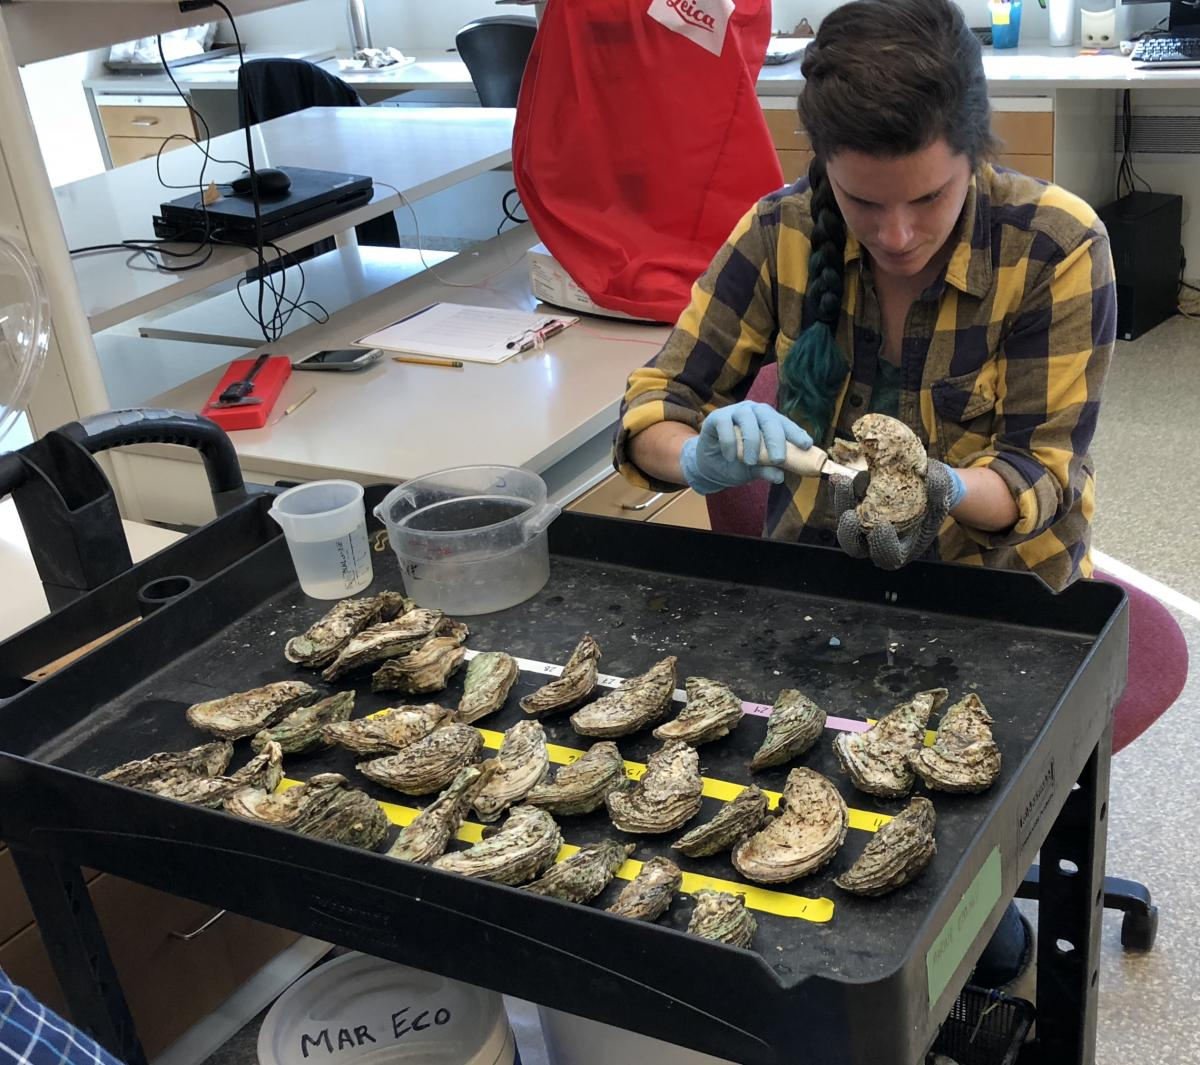 shucking oysters in the lab